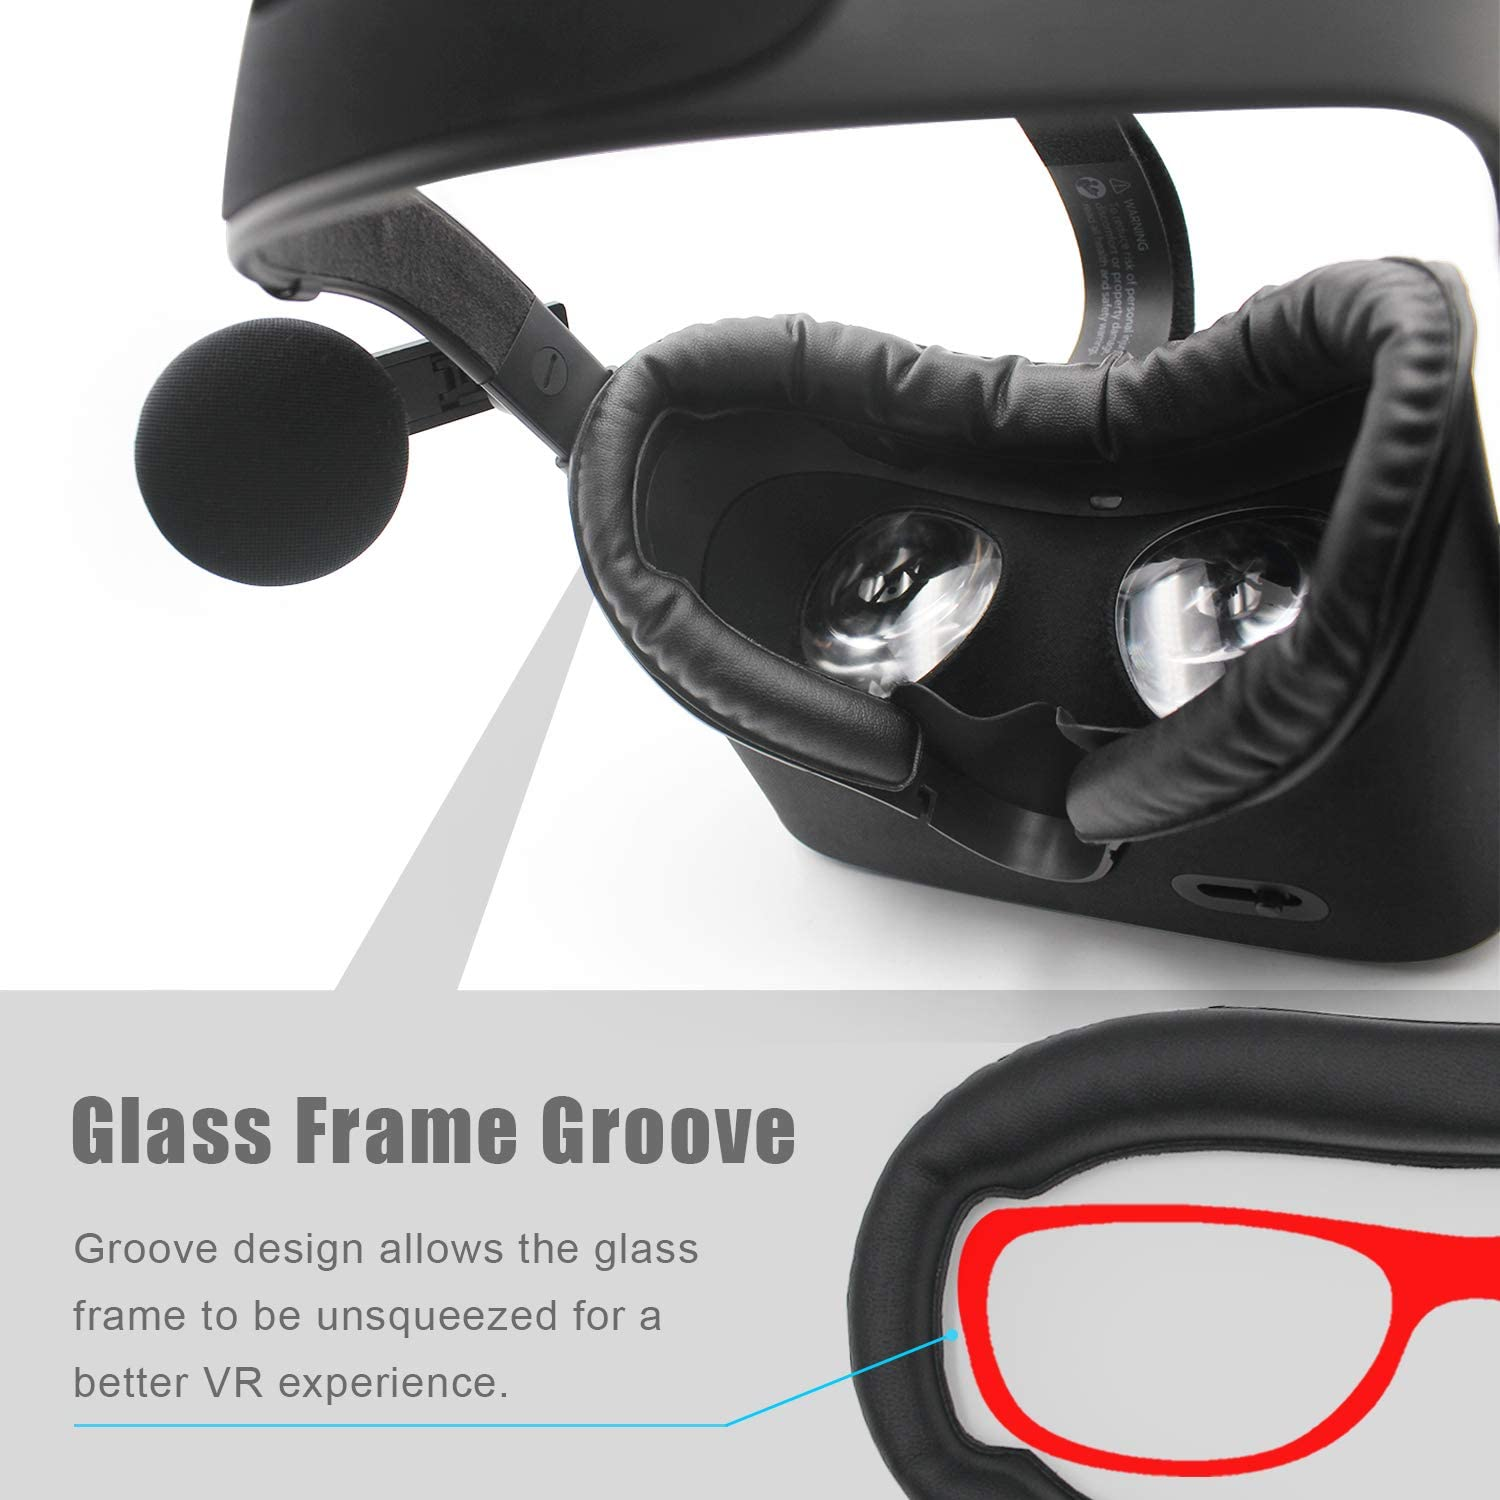 Replacement for Oculus Rift CV1 VR Headset Cover PU leather Foam Eye Pad Virtual Reality Accessory